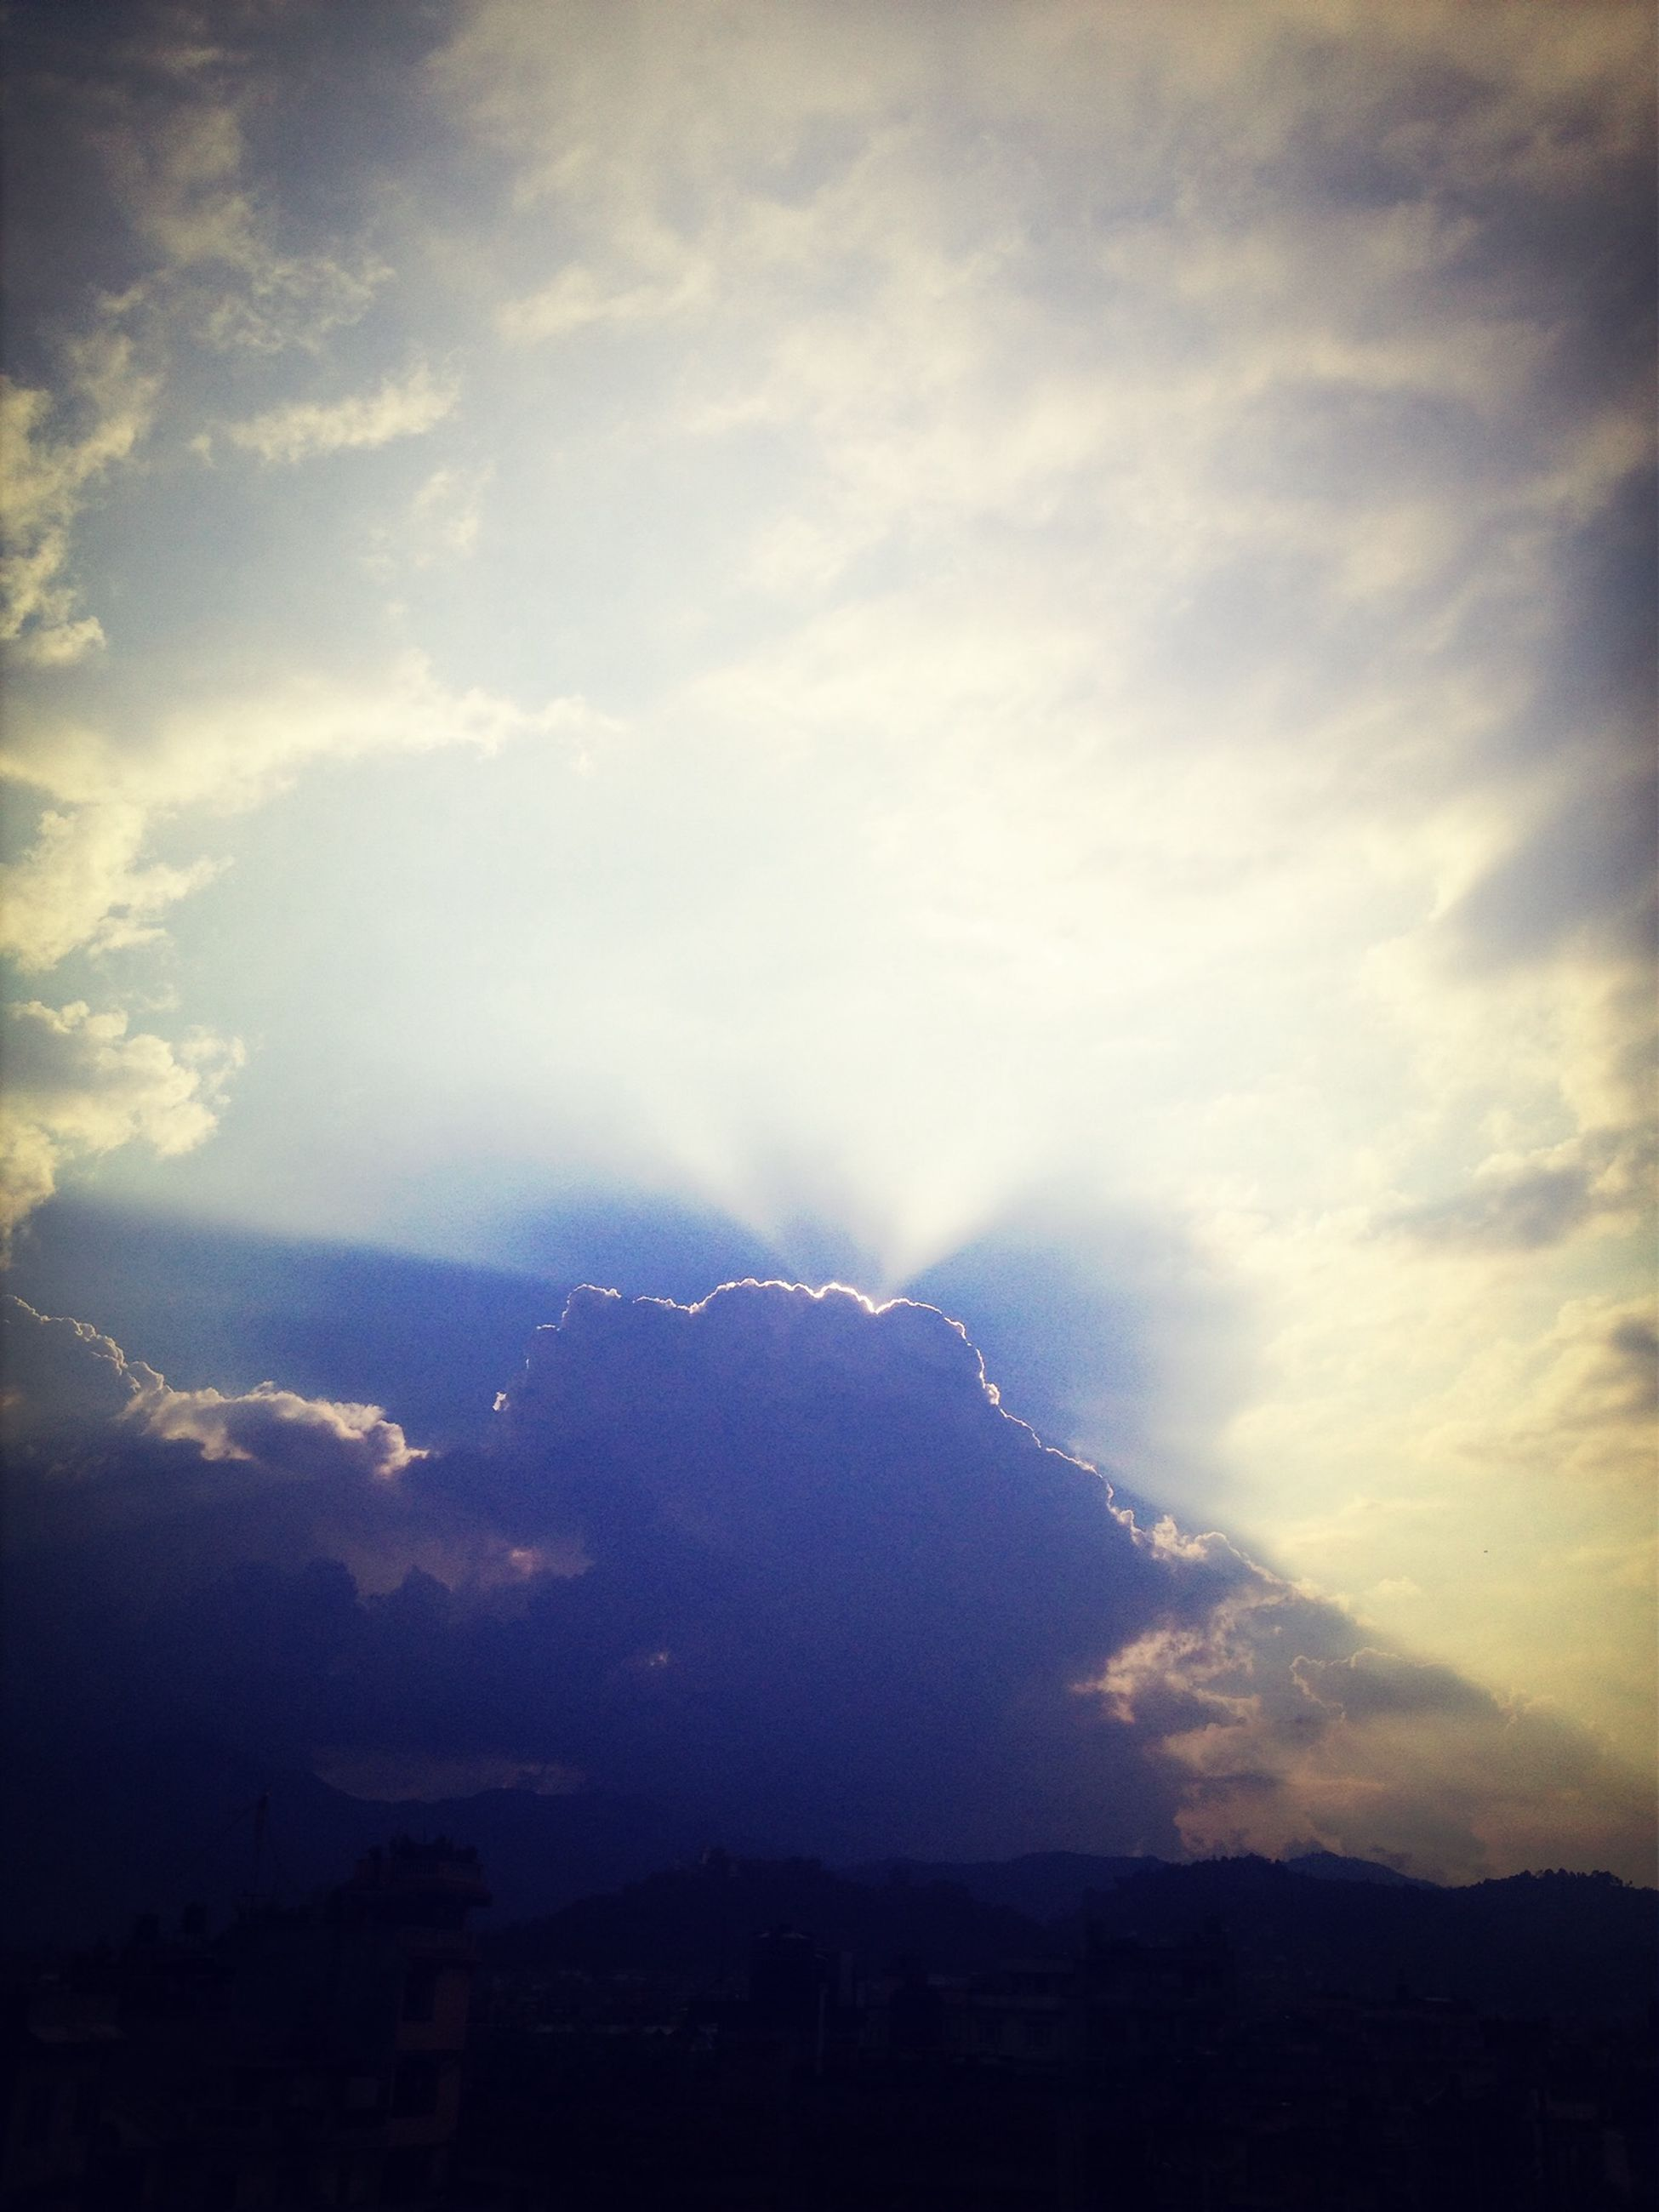 sky, cloud - sky, scenics, beauty in nature, tranquil scene, tranquility, mountain, cloudy, nature, silhouette, weather, cloud, landscape, idyllic, dusk, cloudscape, mountain range, outdoors, overcast, dramatic sky